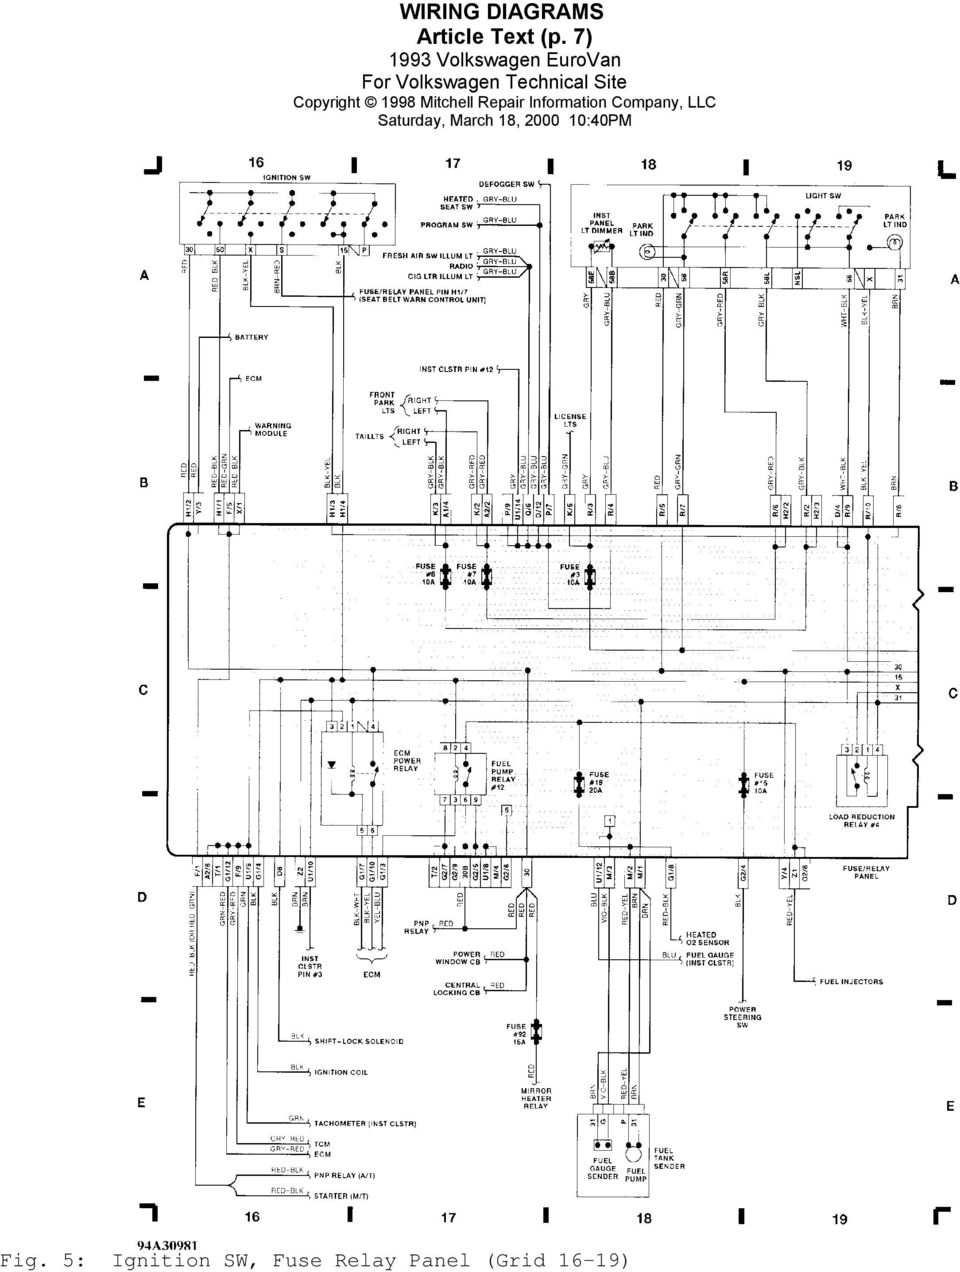 vw eurovan fuse diagram